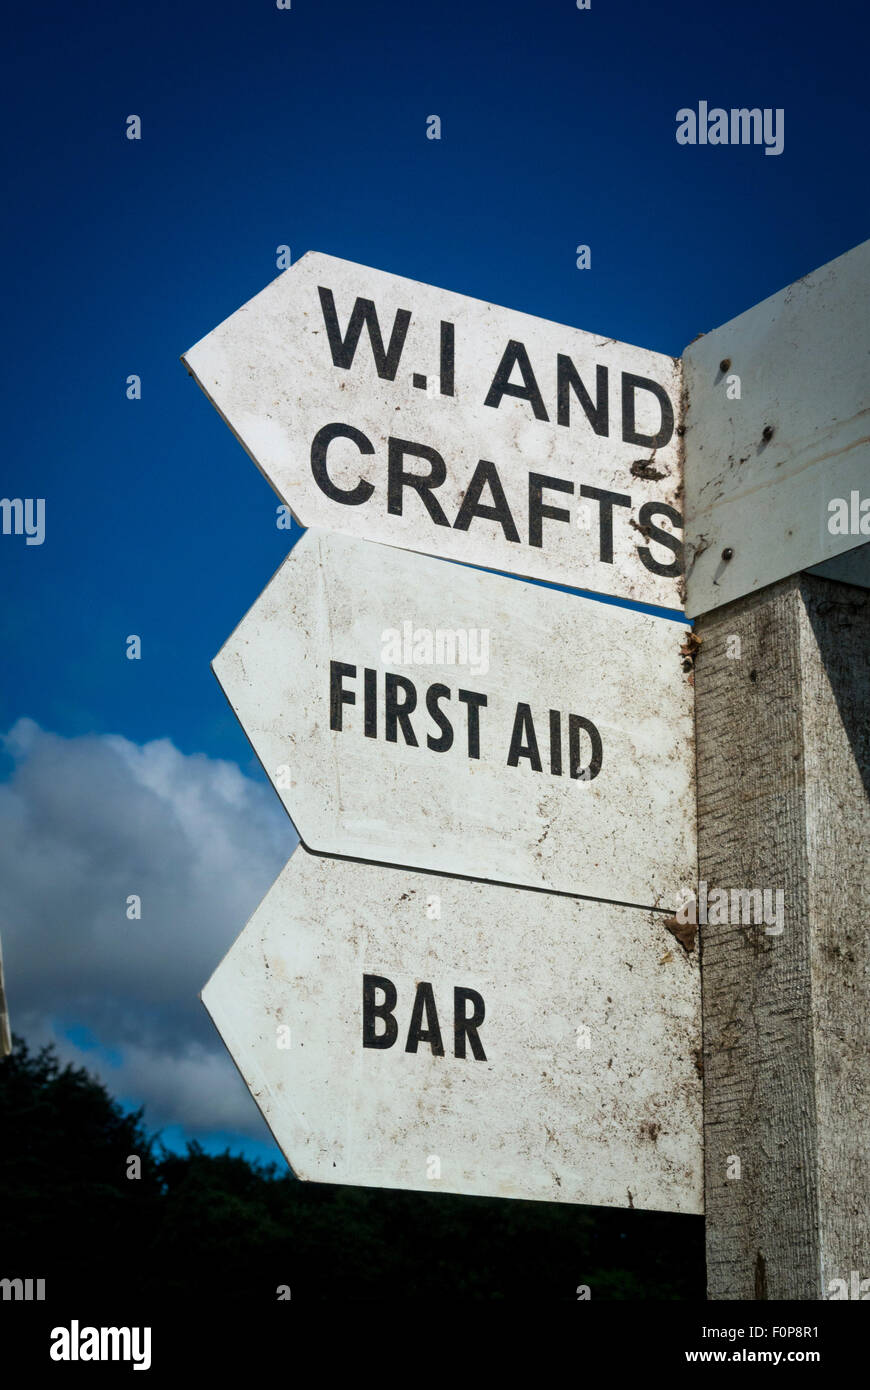 Signpost at local country show giving directions to WI and Crafts, First Aid and Bar. - Stock Image